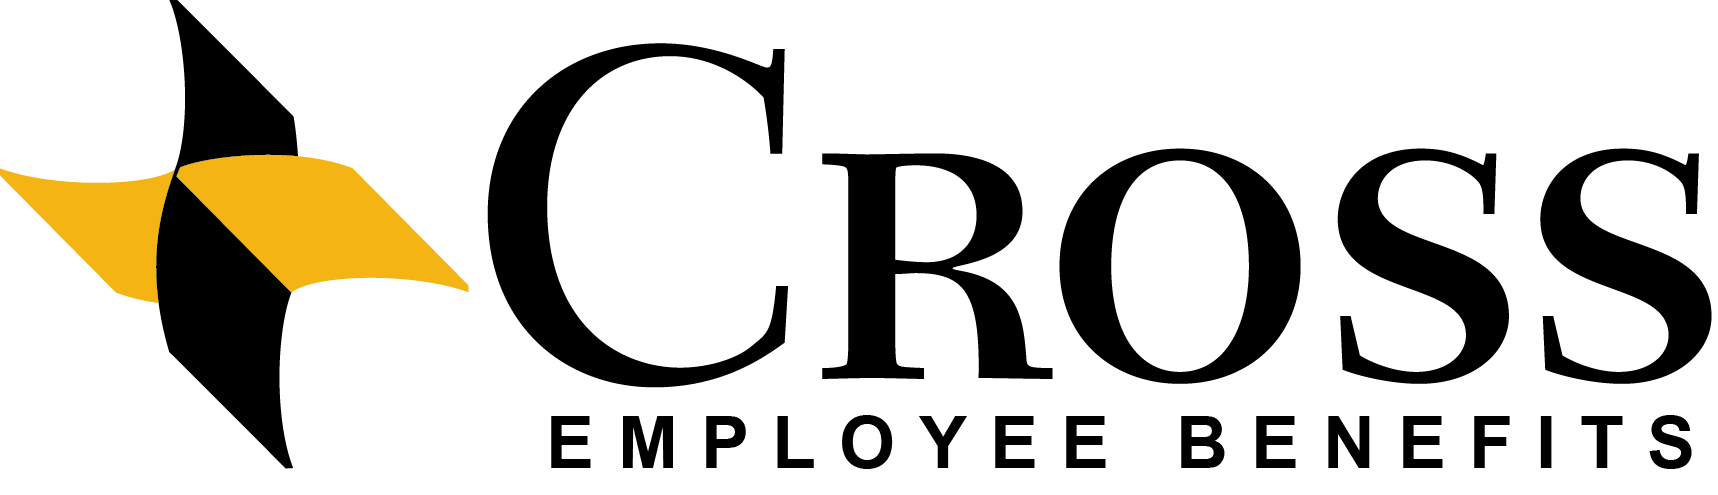 Cross Employee Benefits Logo